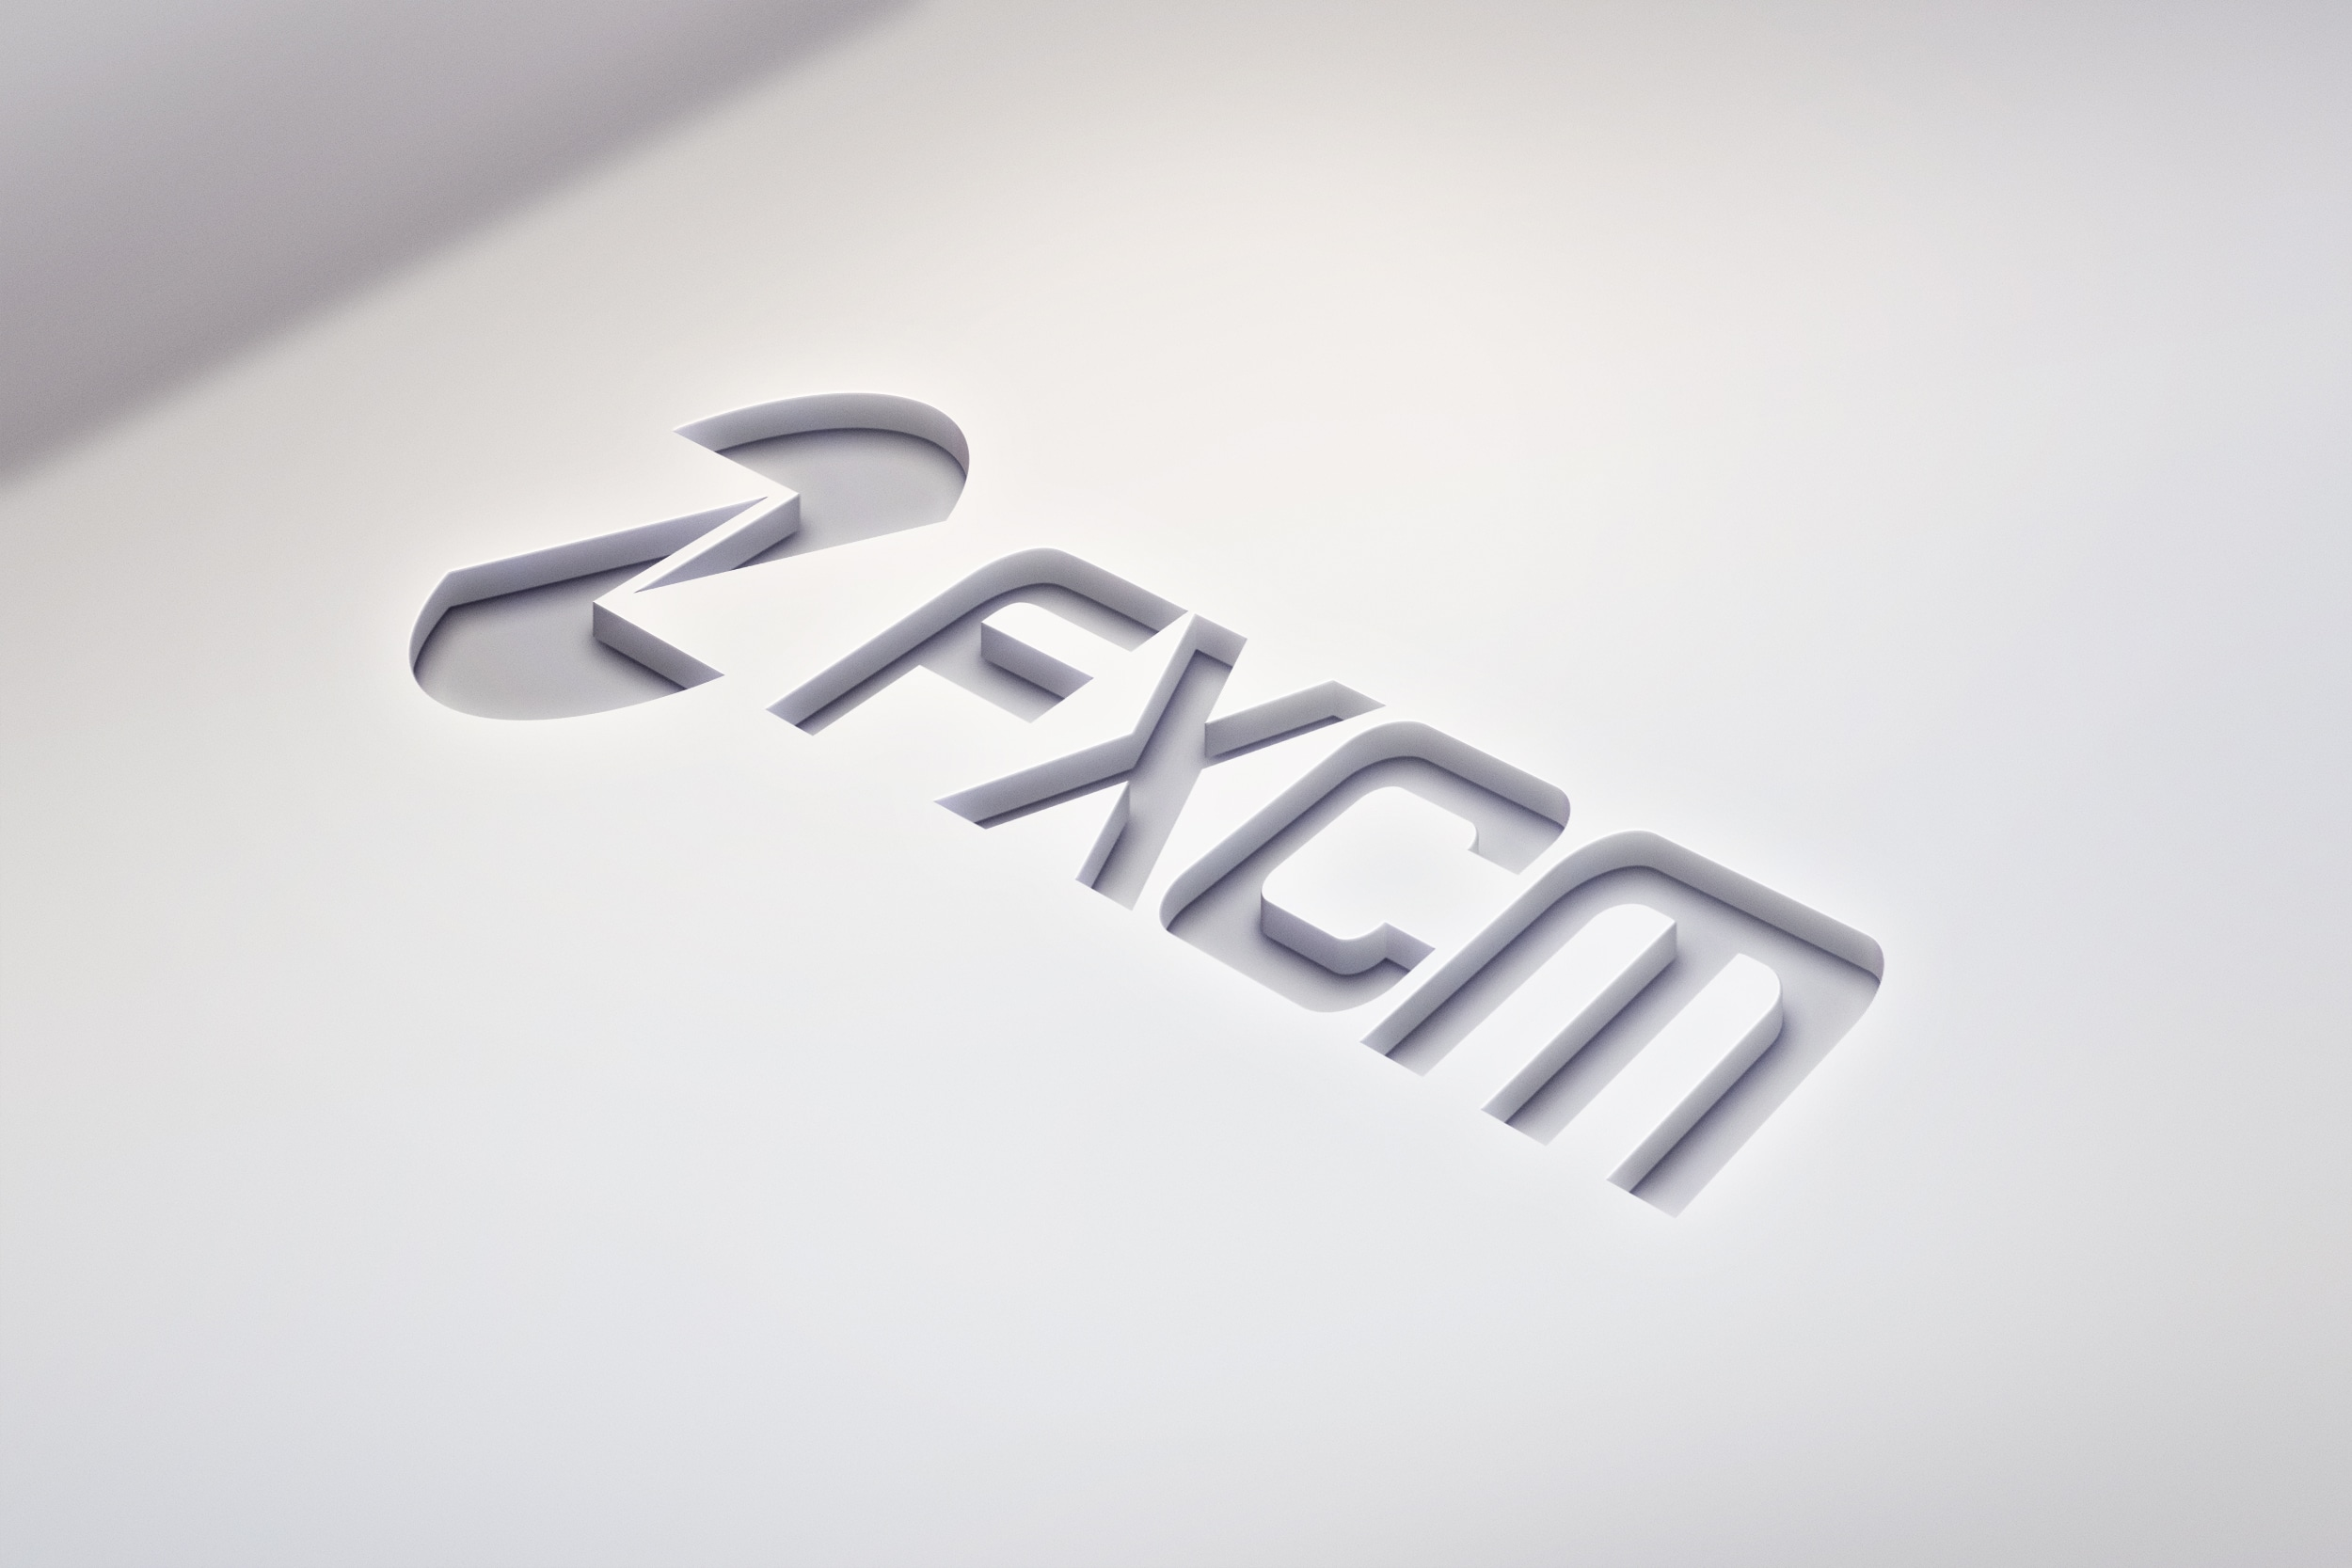 Breaking: FXCM and Leucadia Sign MOU, Extending Their Partnership to 2018